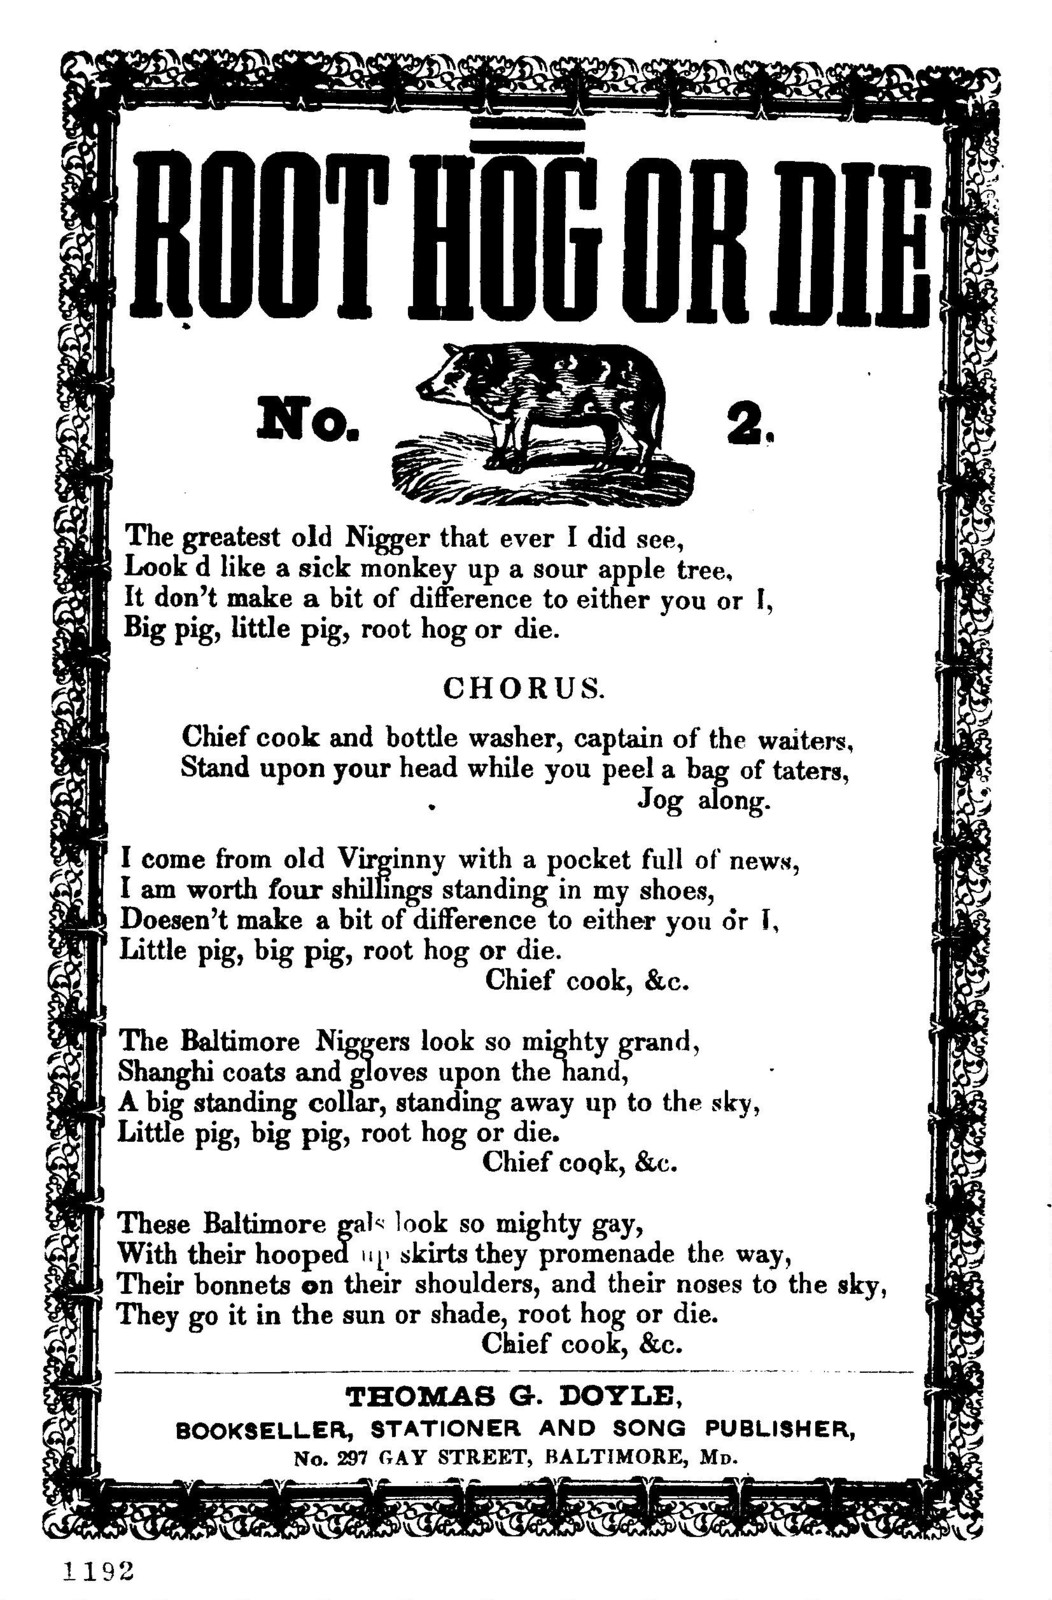 Root hog or die. No. 2. Thomas G. Doyle, Bookseller, Stationer &c., No. 297 Gay Street, Baltimore, Md